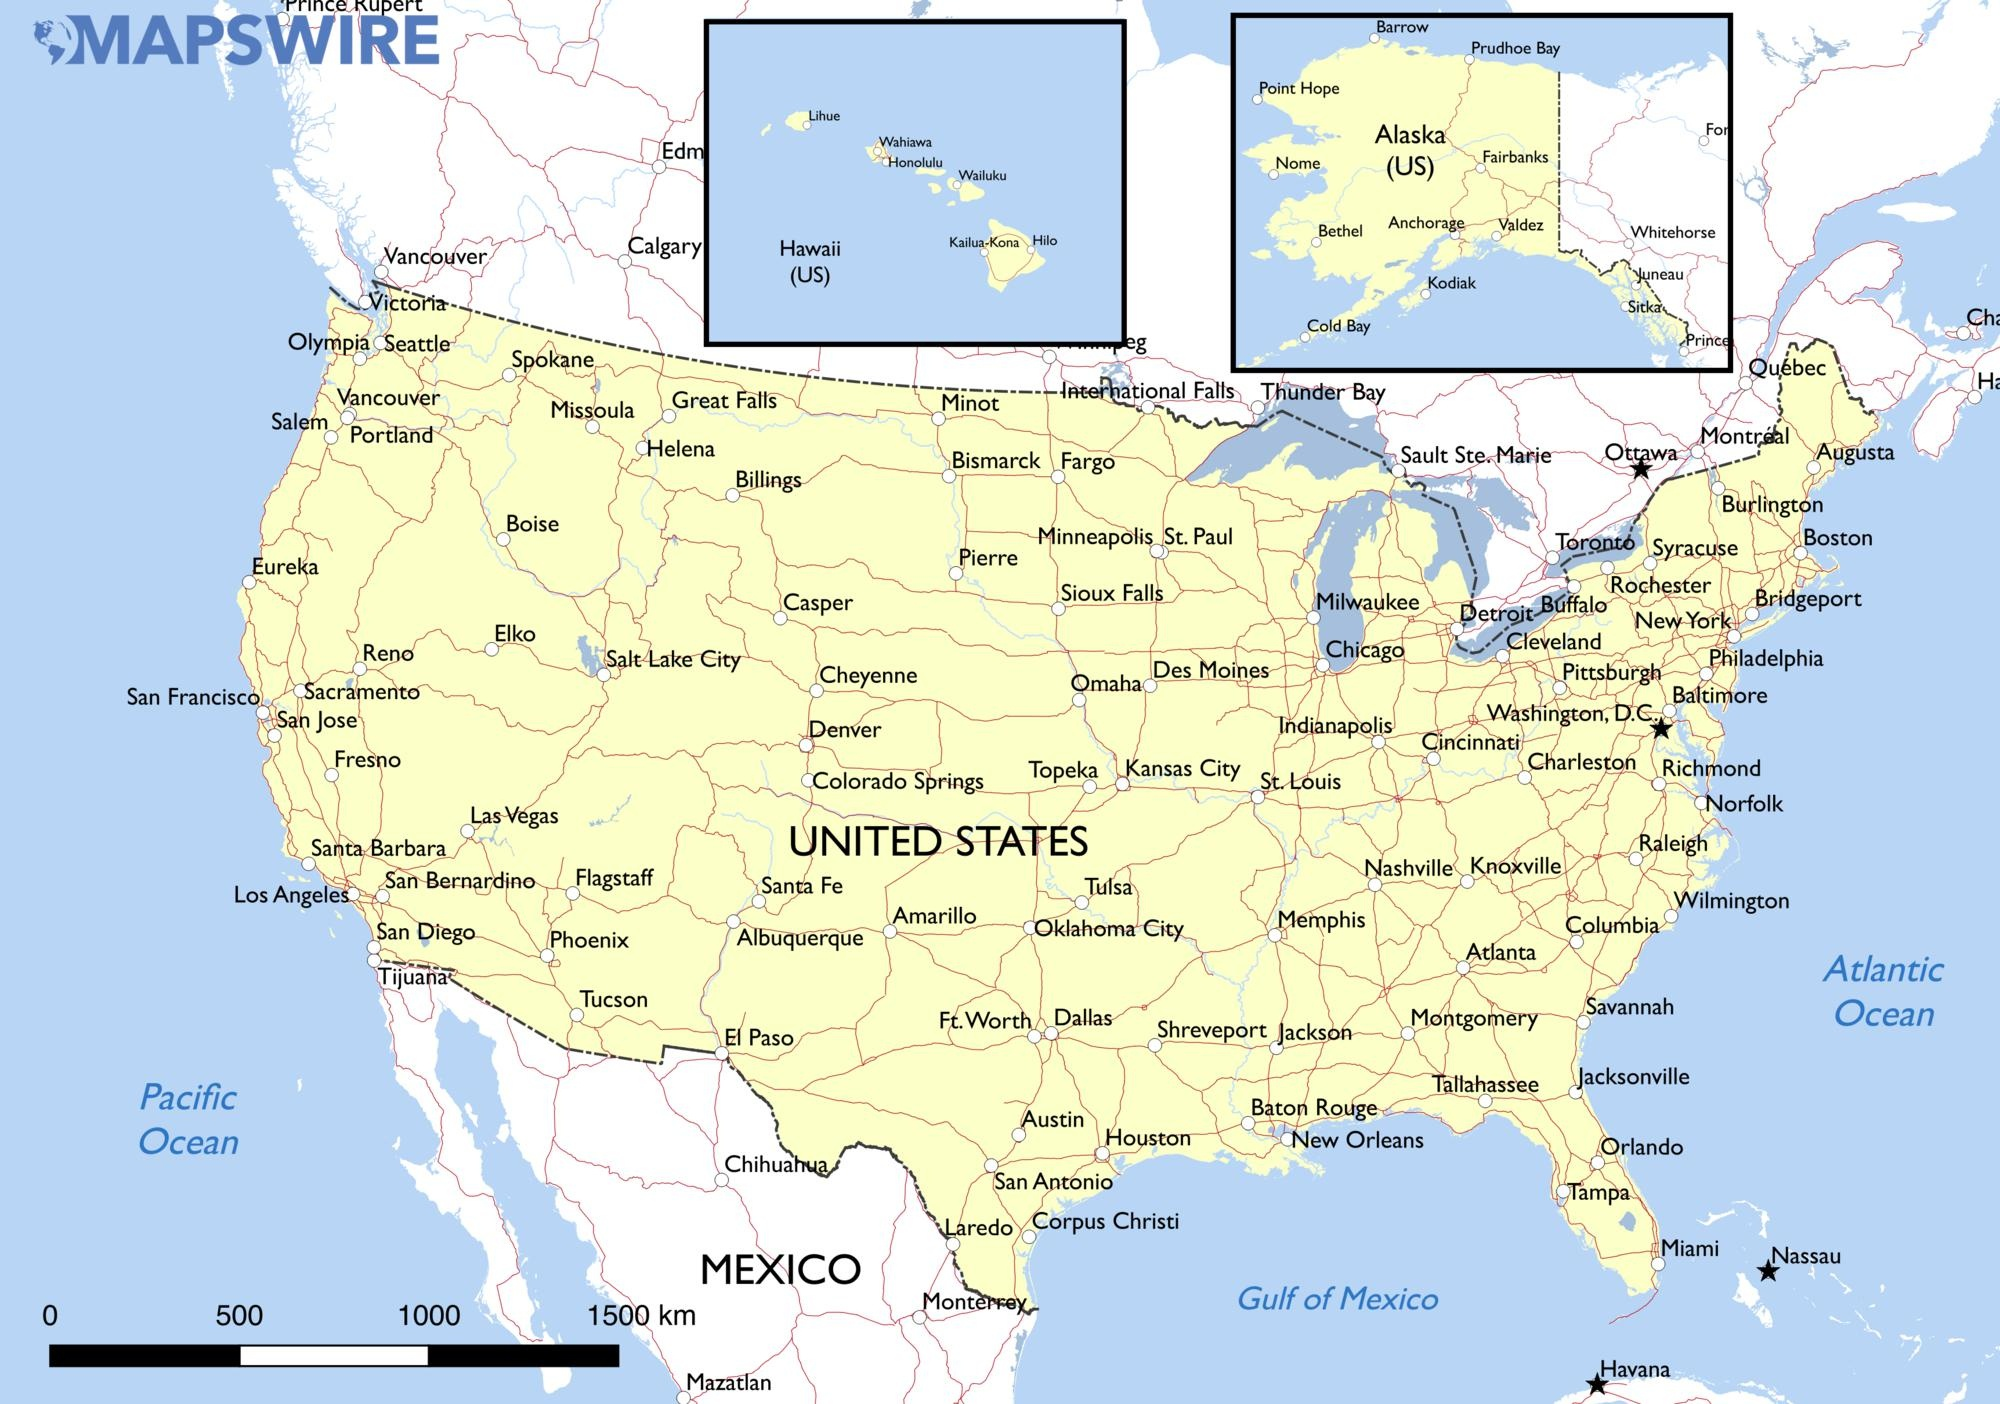 Free Maps Of The United States – Mapswire - Free Printable Map Of The United States